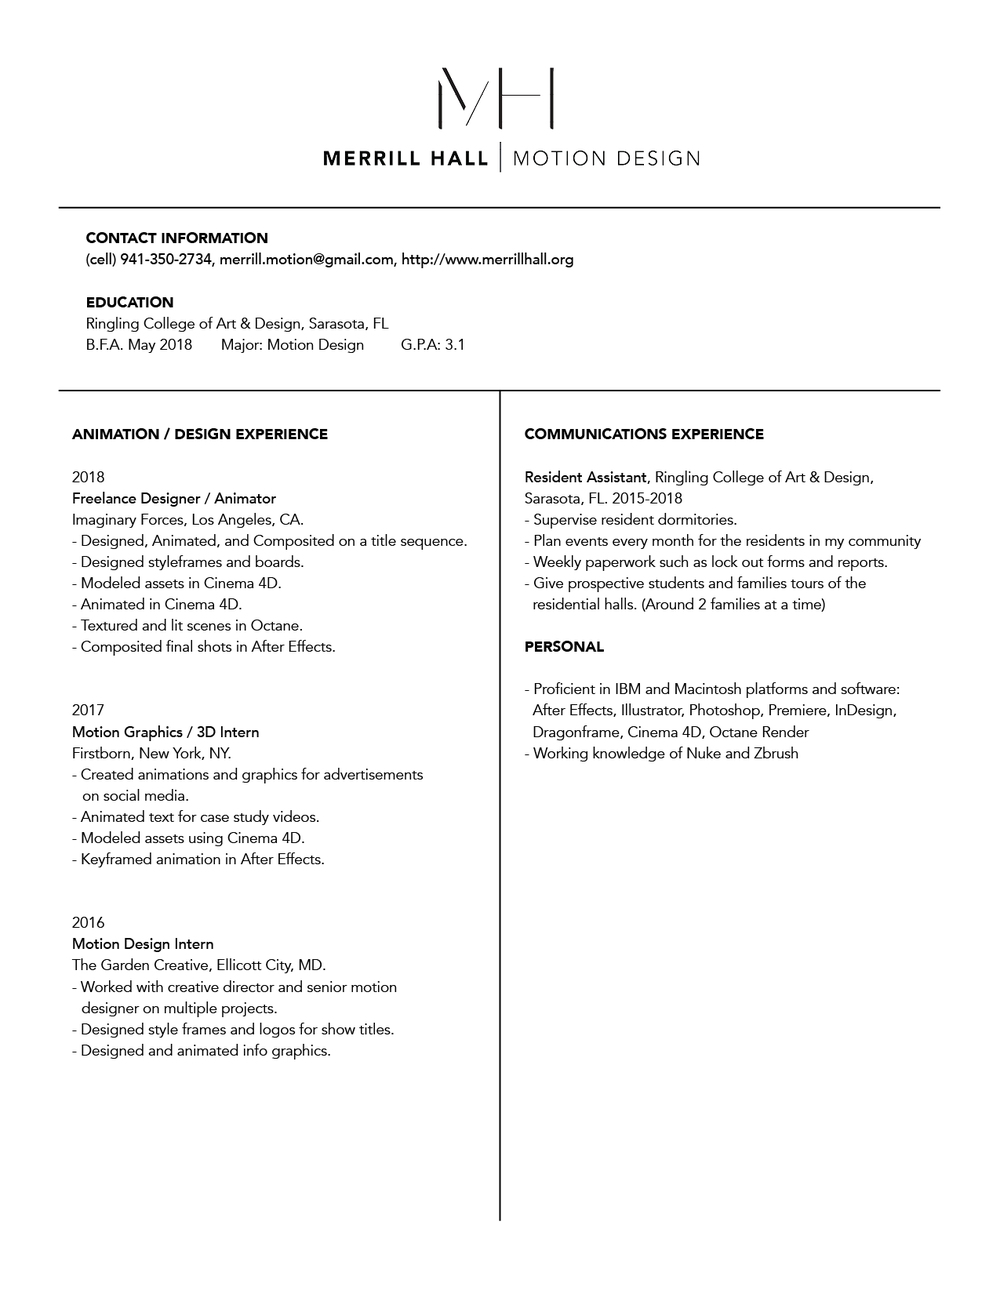 MerrillHall_Resume_.png